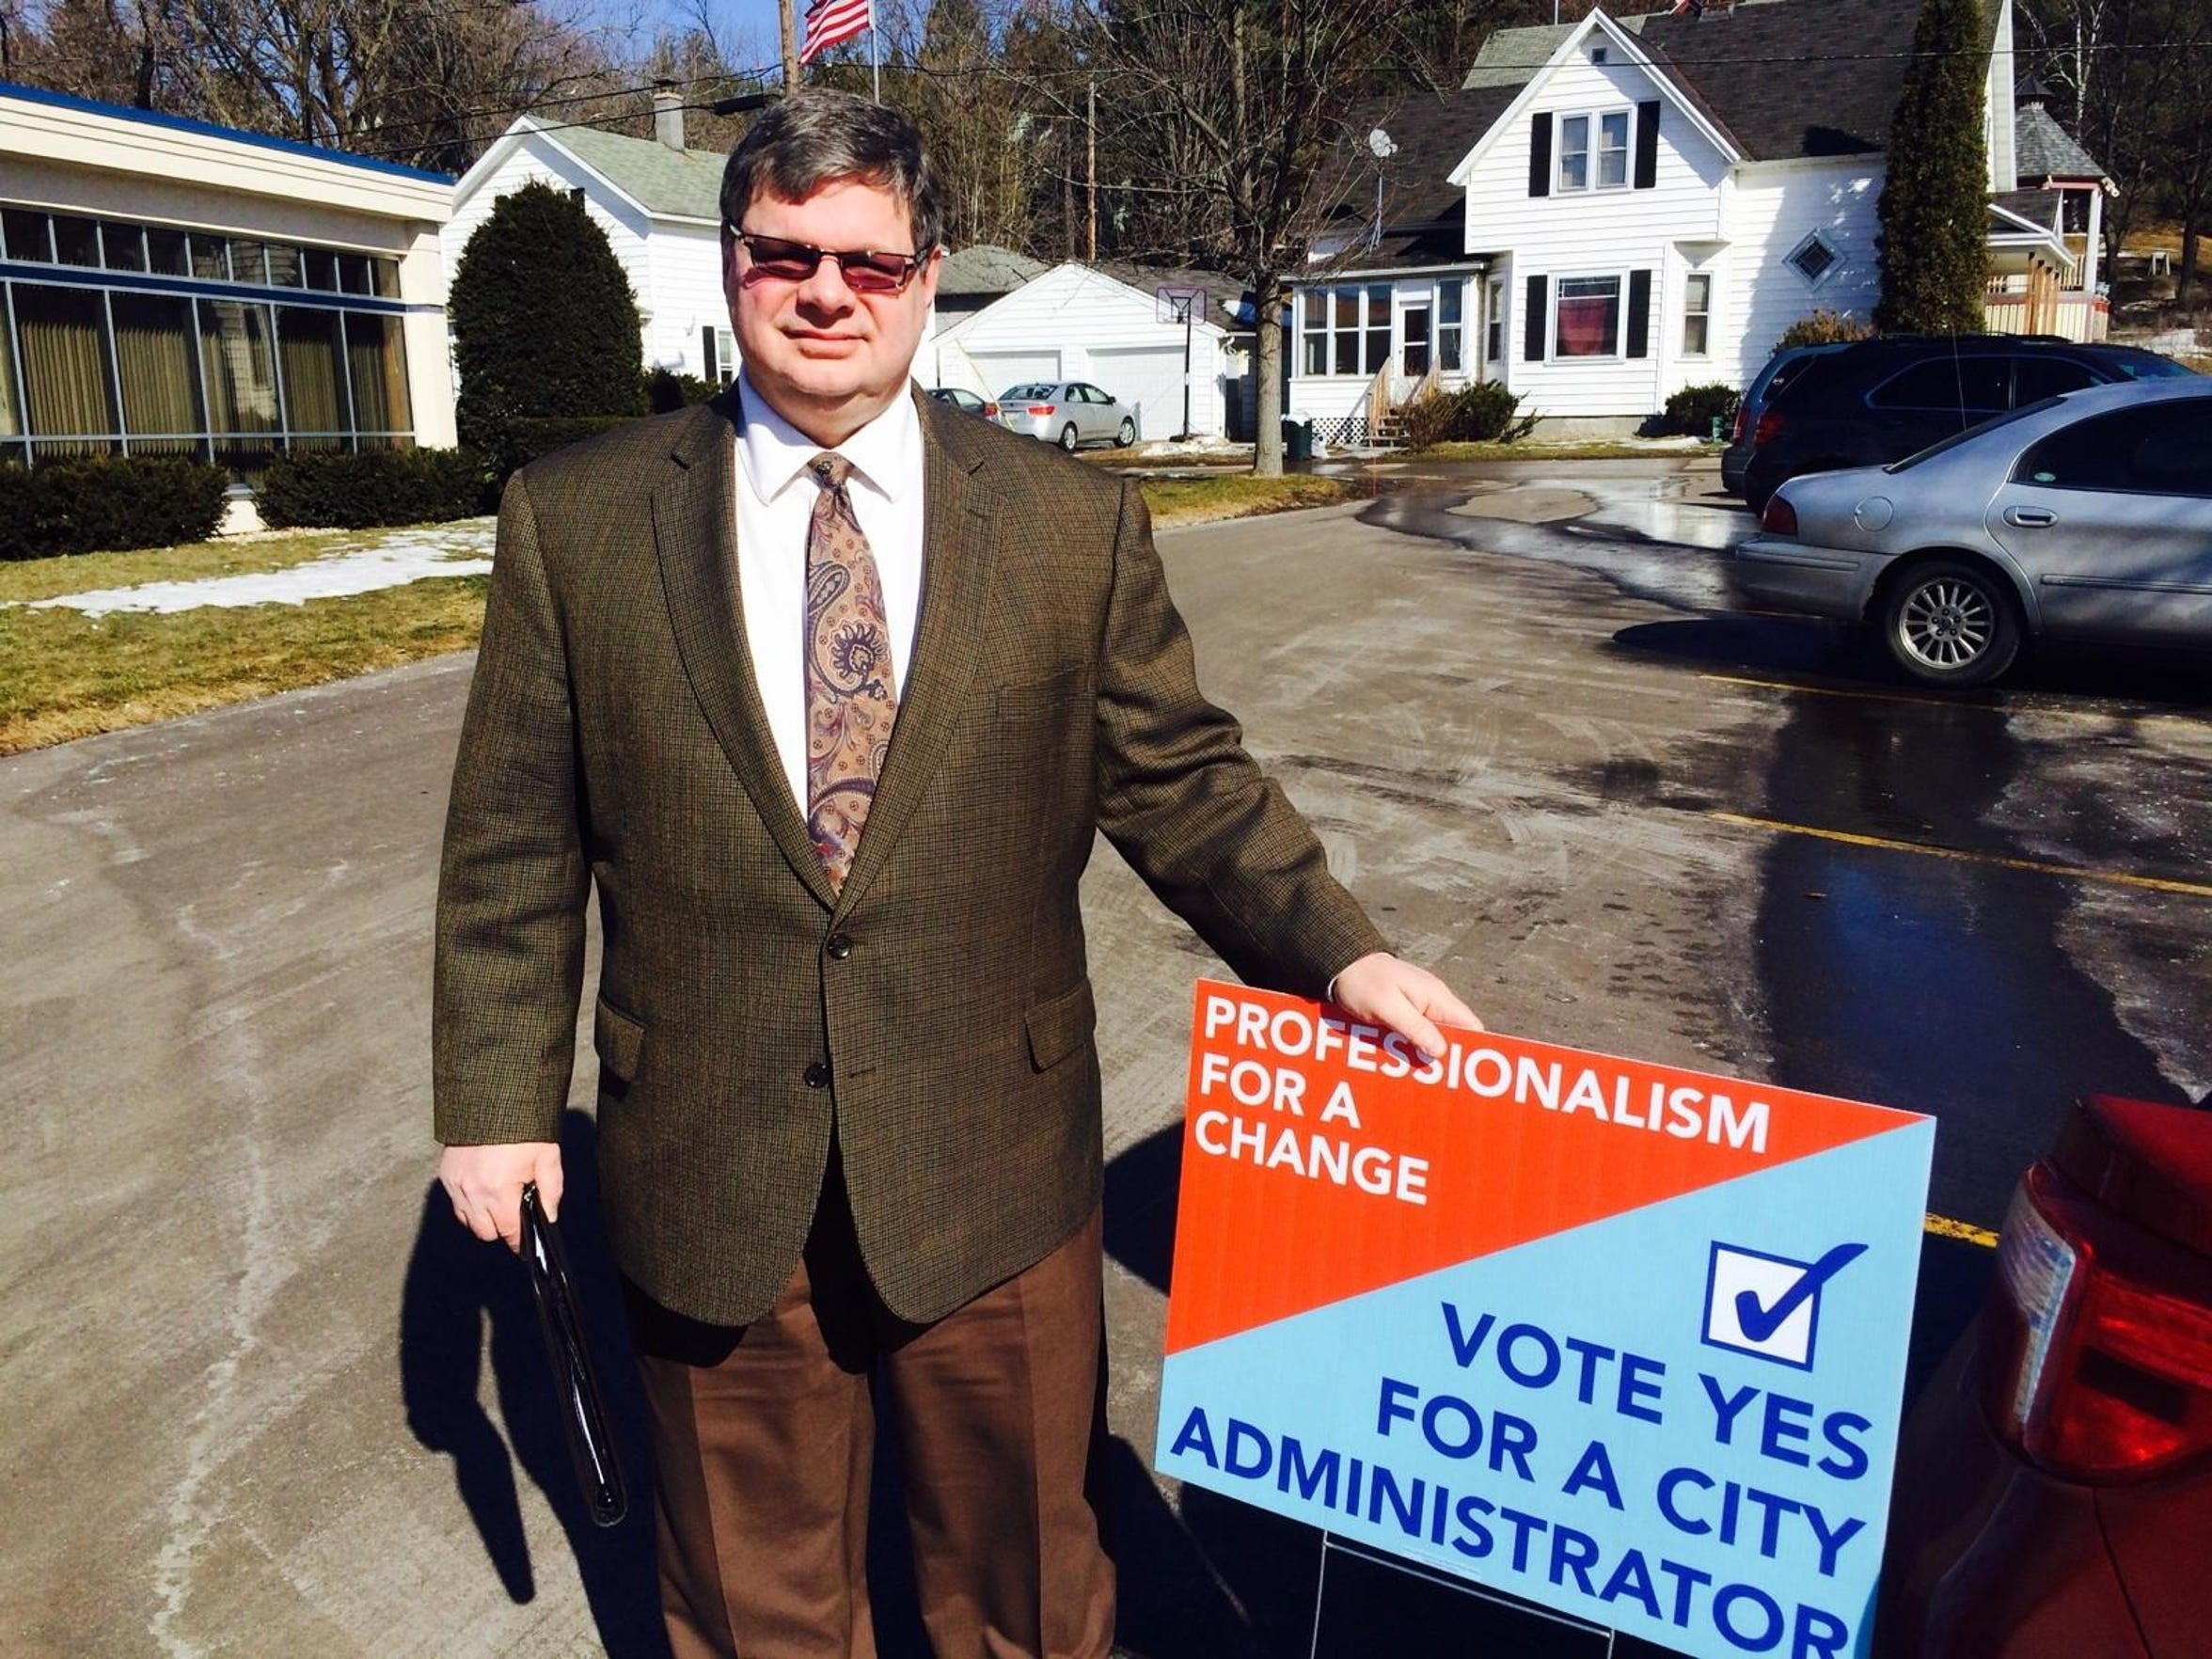 City Council member Keene Winters holds a sign advocating for a city administrator in Wausau in this March 10, 2015, file photo.